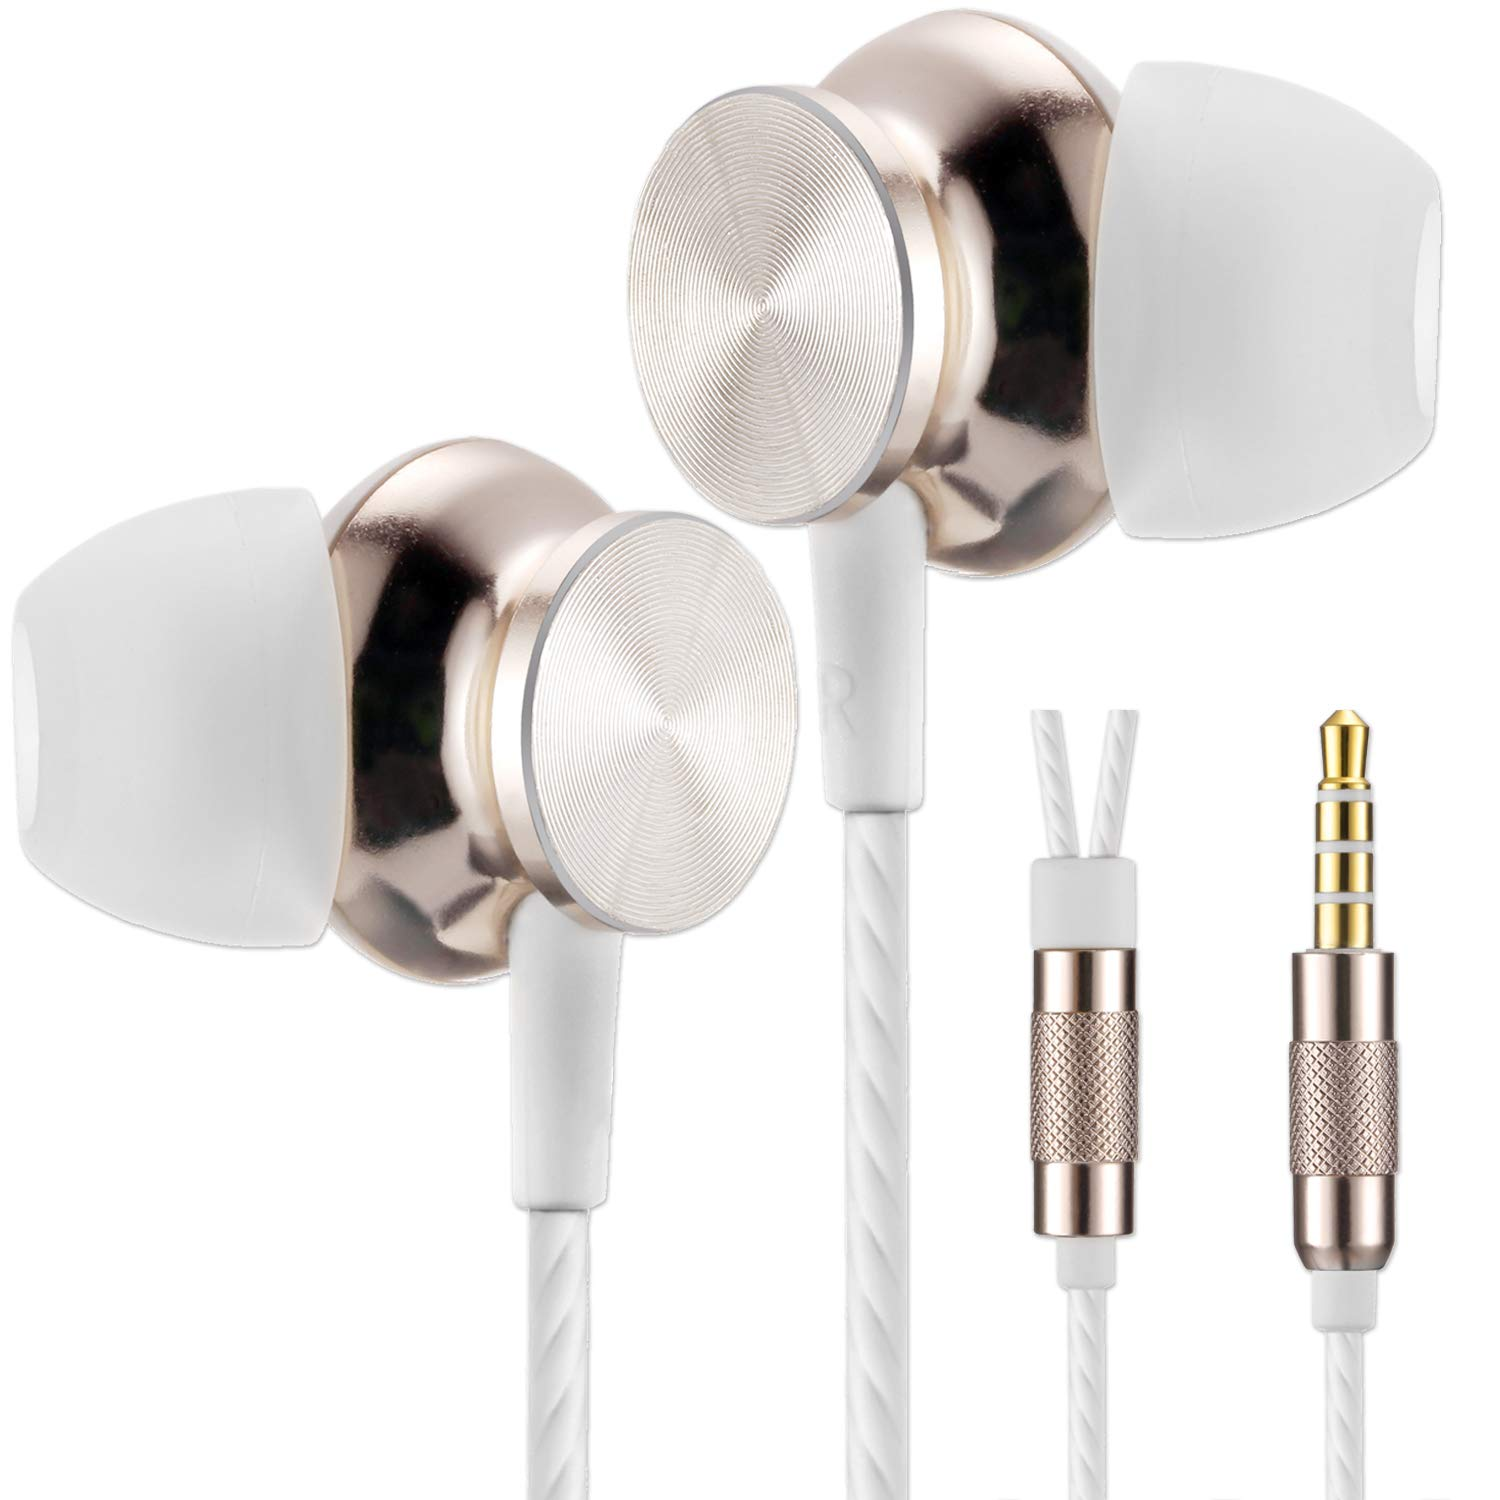 Betron BS10 Earphones Headphones, Powerful Bass Driven Sound, 12mm Large Drivers, Ergonomic Design for iPhone, iPad, iPod, Samsung and Mp3 Players (Gold)